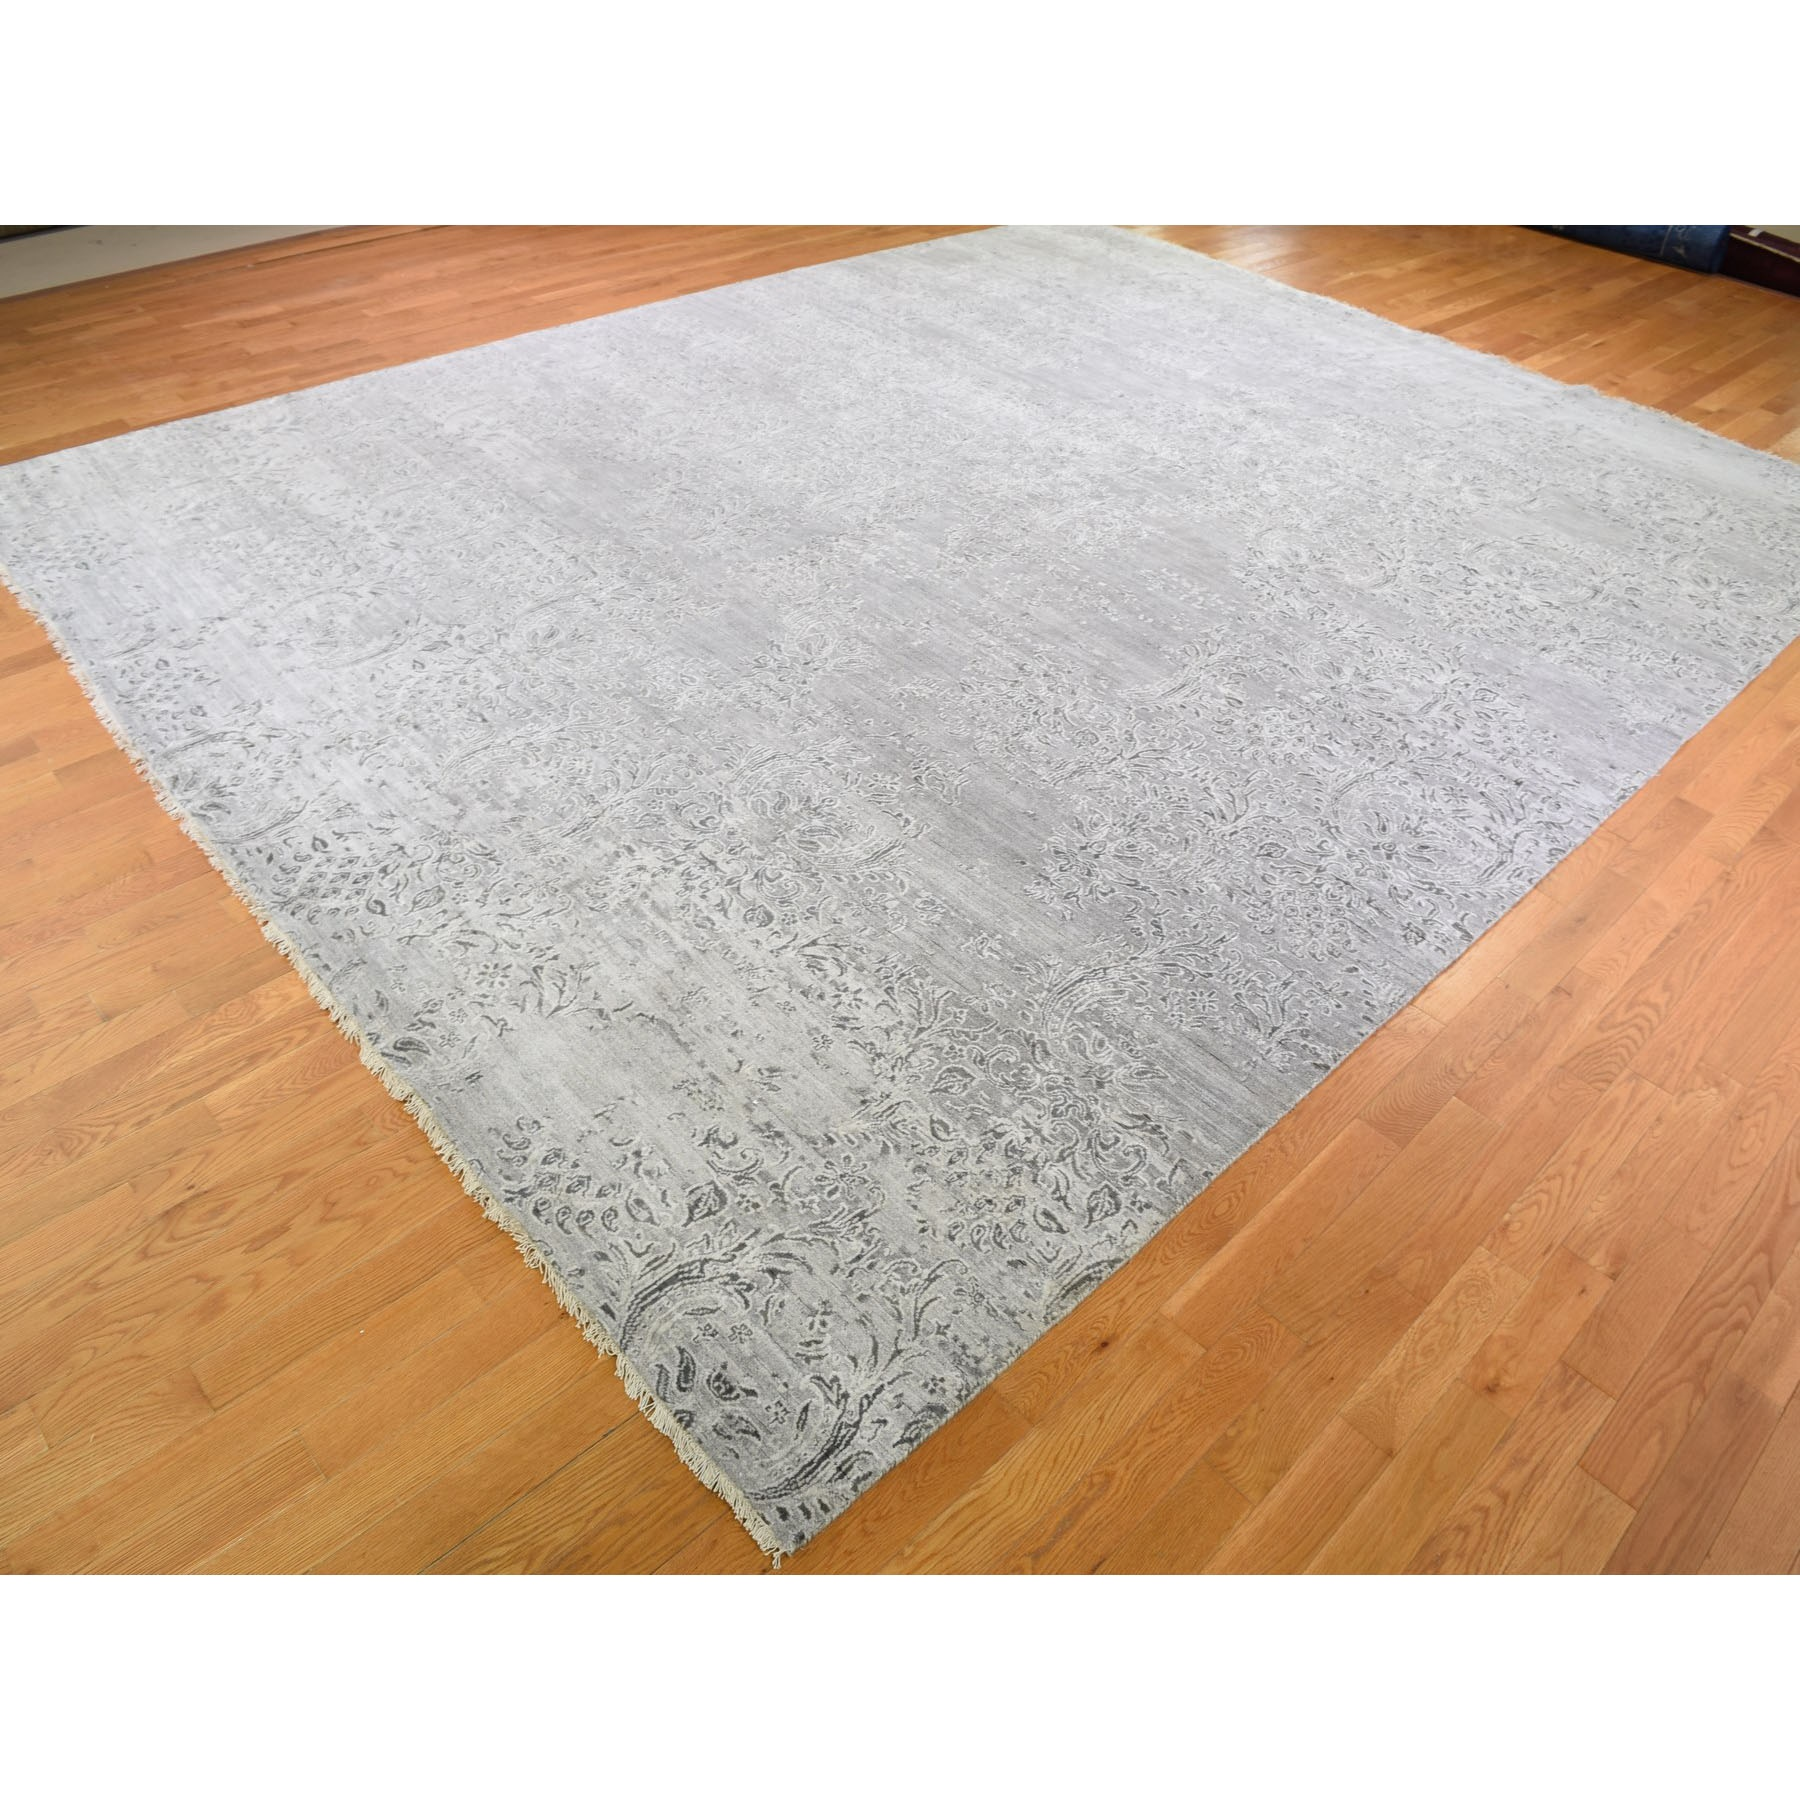 11-9 x14-10  Oversize Gray Damask Tone On Tone Wool and Silk Hand-Knotted Oriental Rug